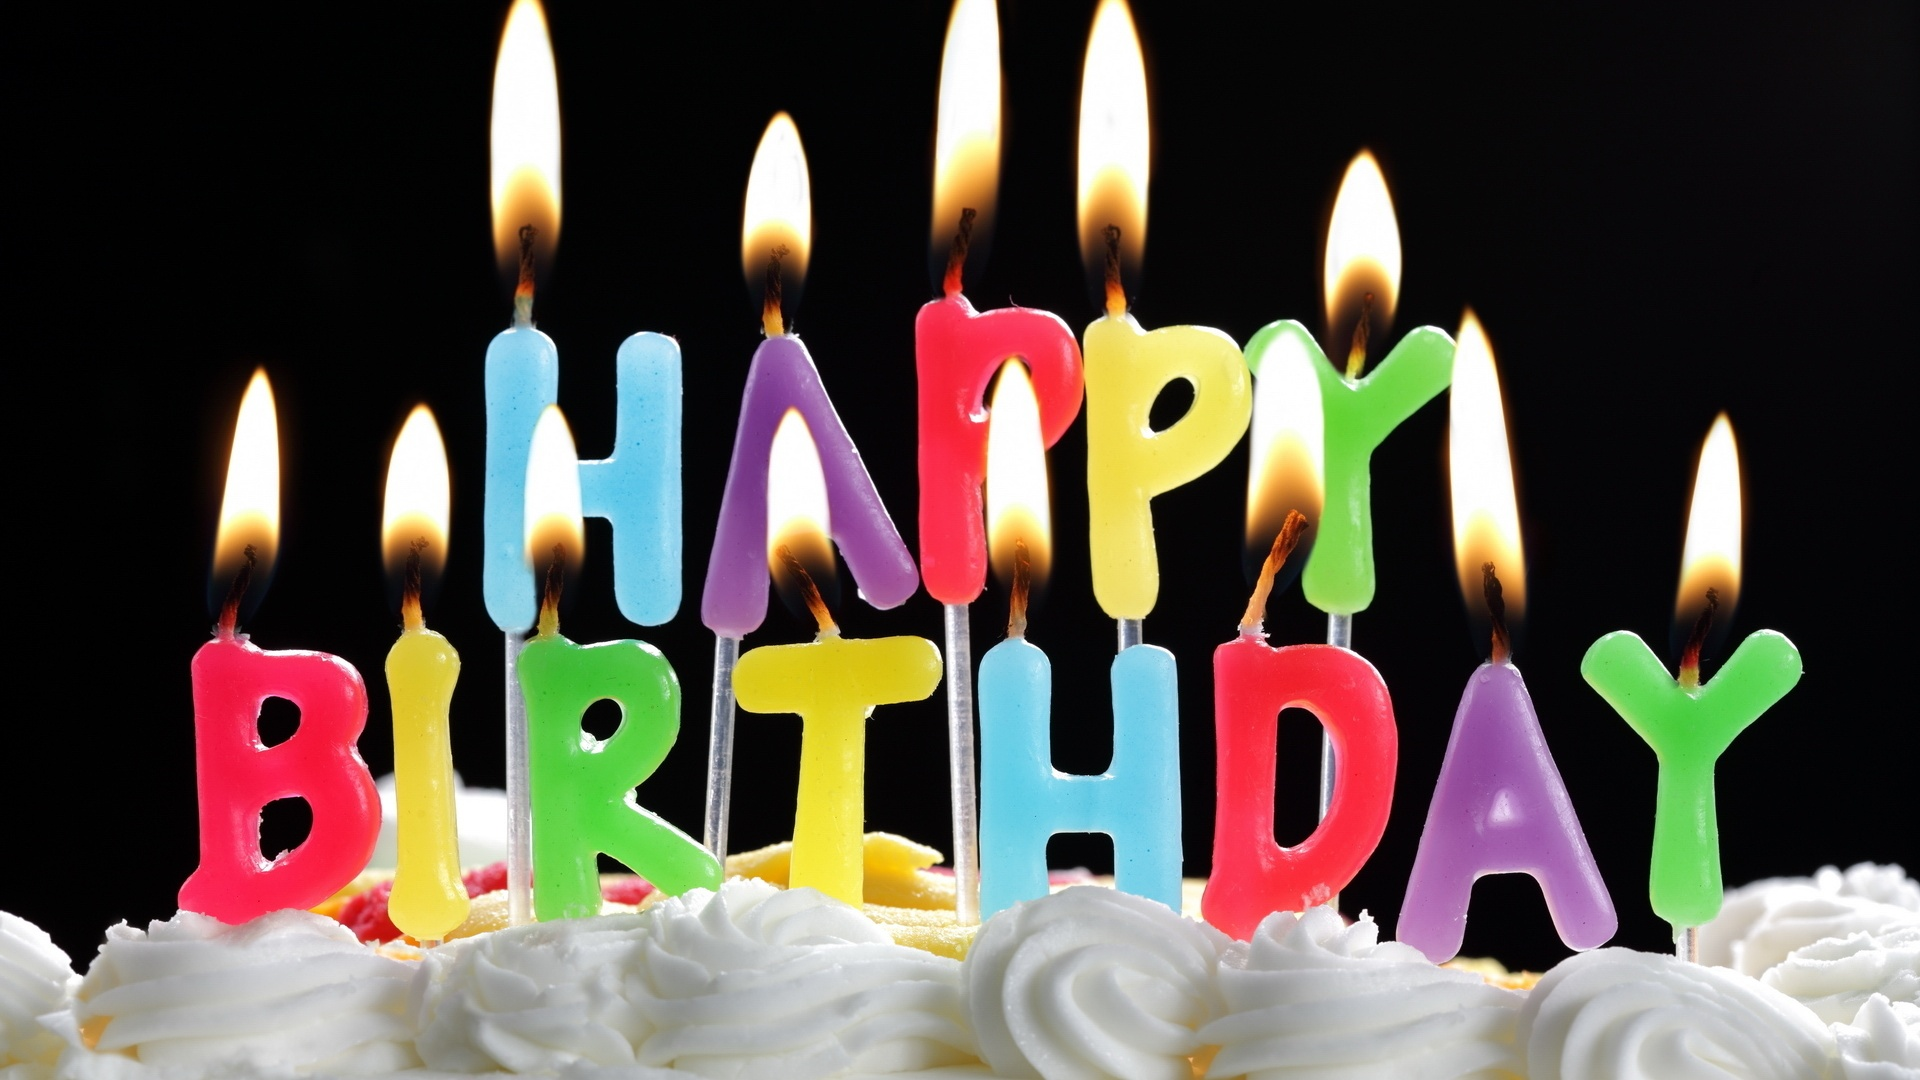 Aide choix Boitier - Page 4 Happy-Birthday-cake-and-candles_1920x1080